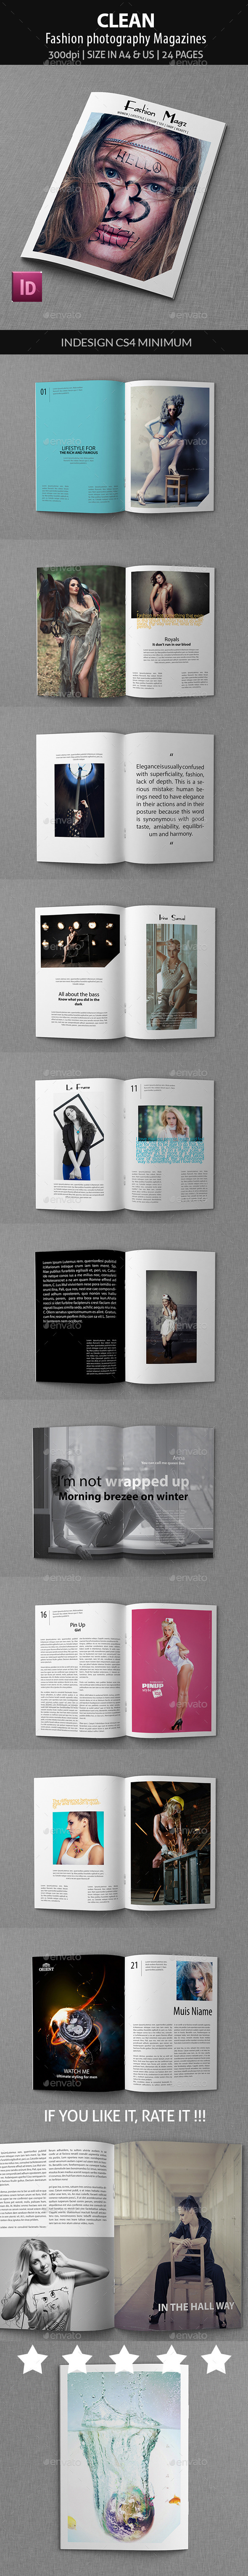 Clean - Fashion photography Magazines - Magazines Print Templates